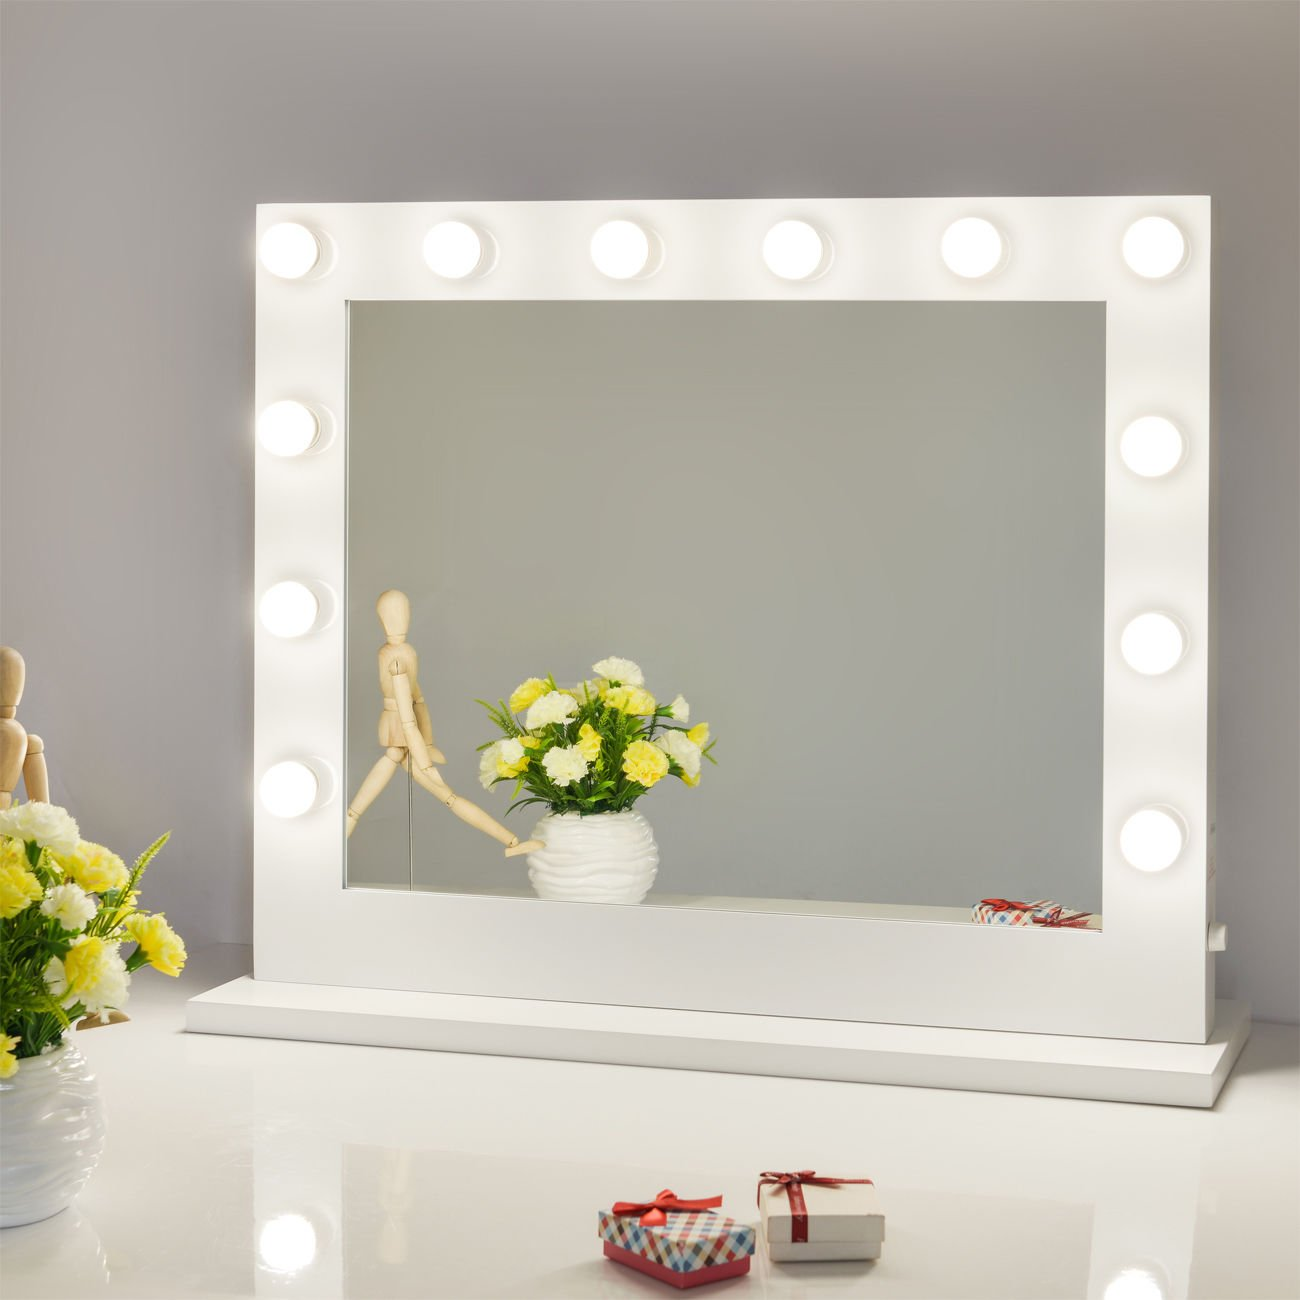 Chende vanity mirror with light hollywood makeup mirror wall mounted chende vanity mirror with light hollywood makeup mirror wall mounted lighted mirror amazon home kitchen aloadofball